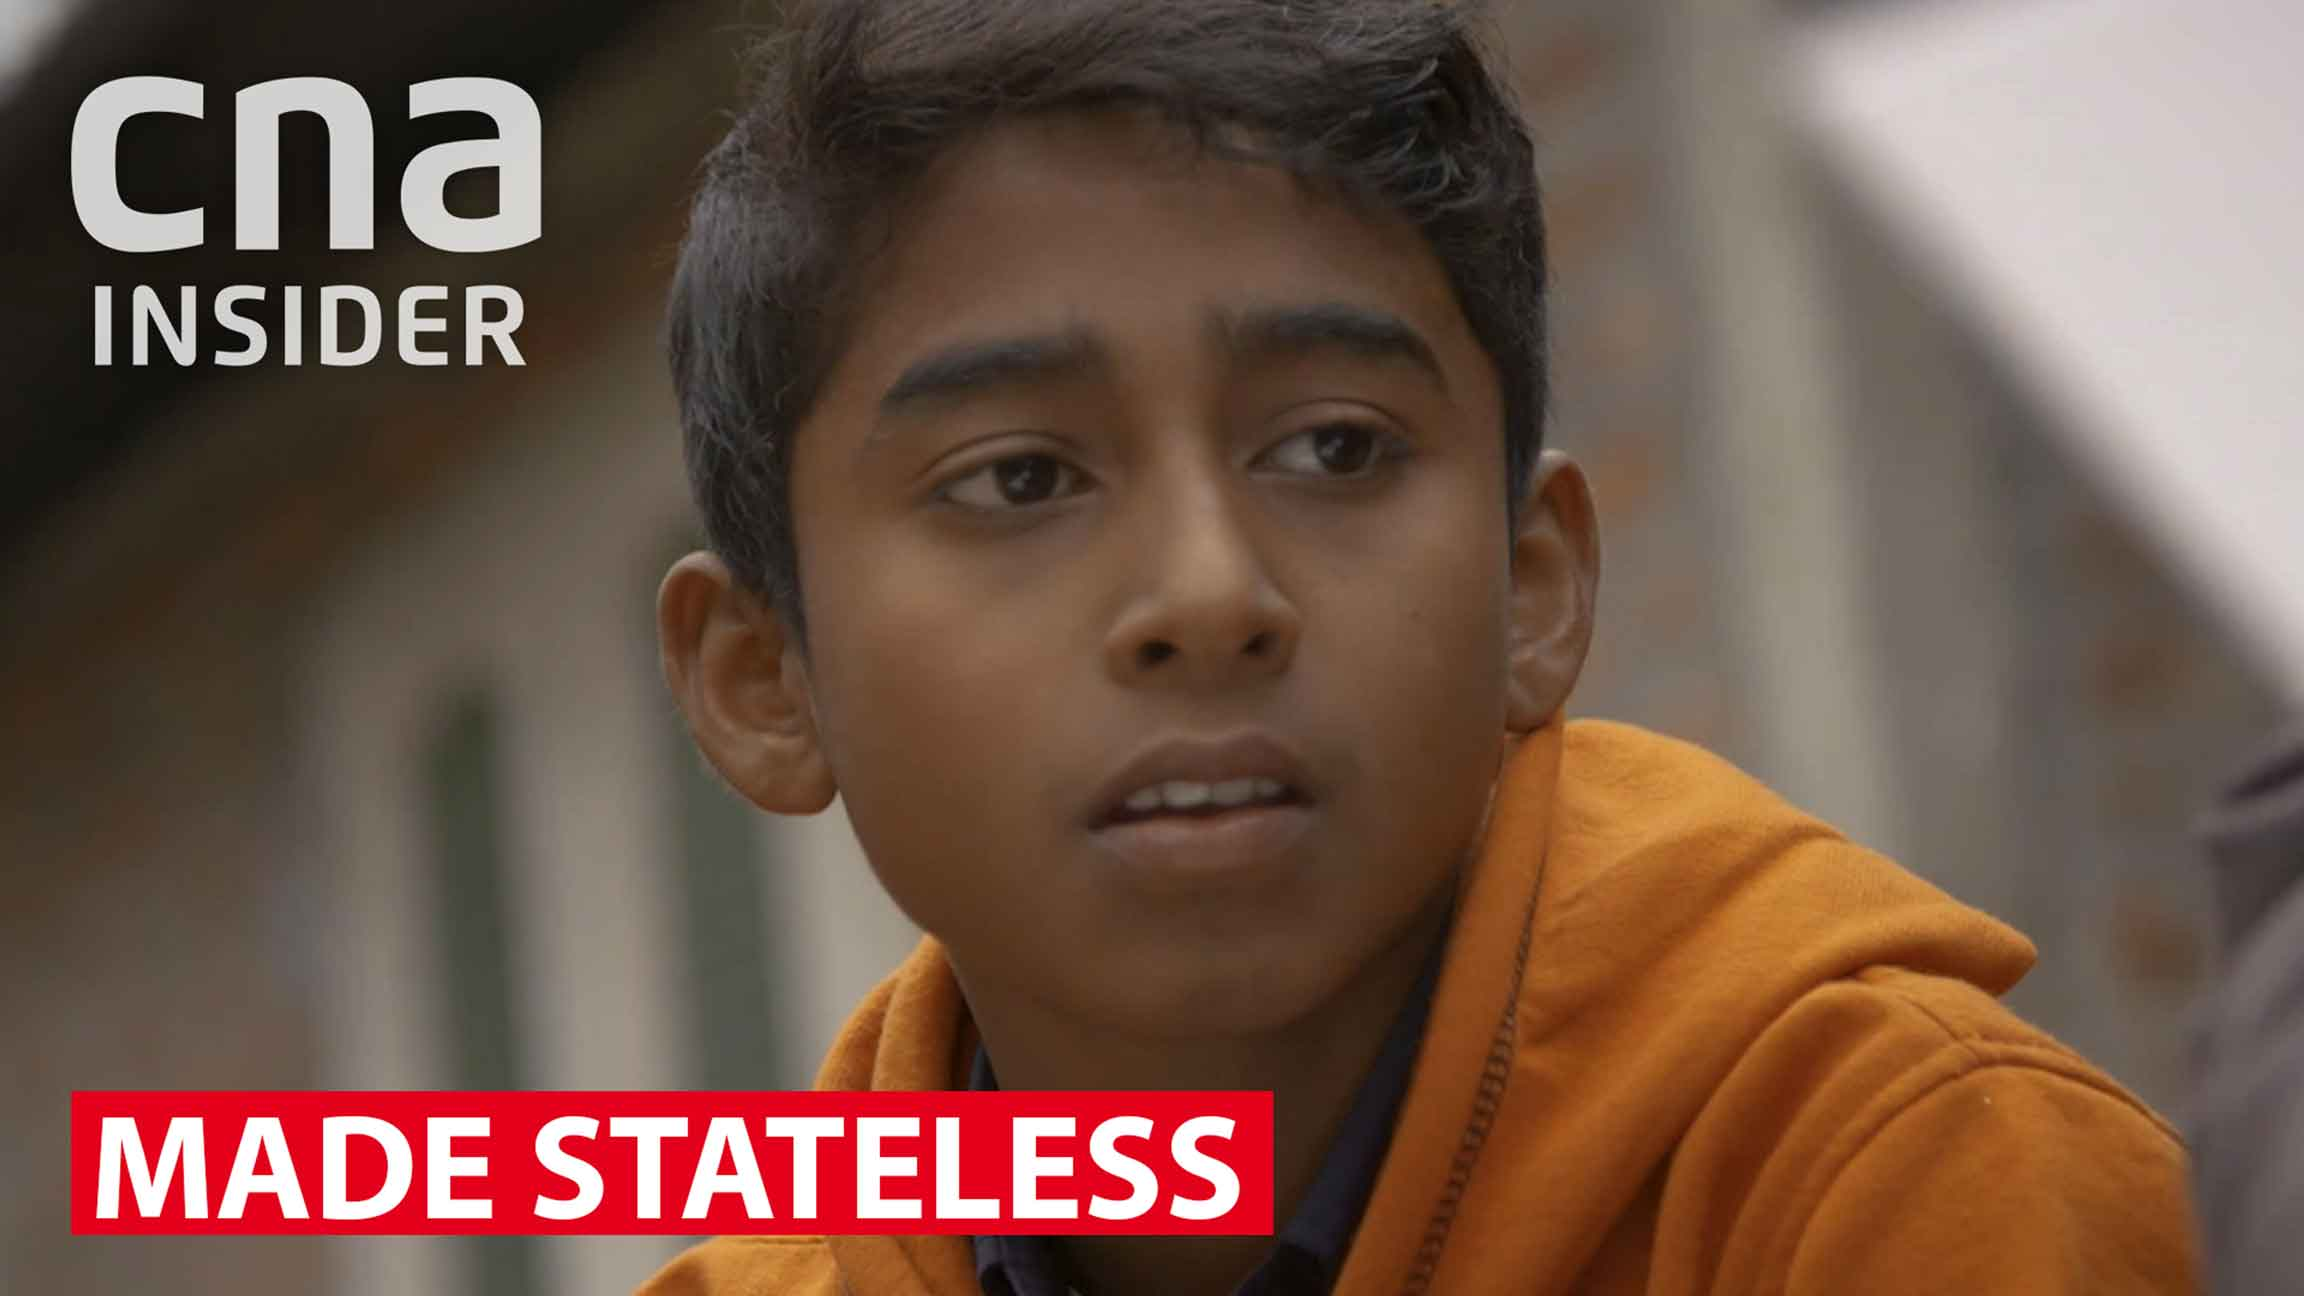 Made stateless: a looming crisis bigger than the Rohingya?